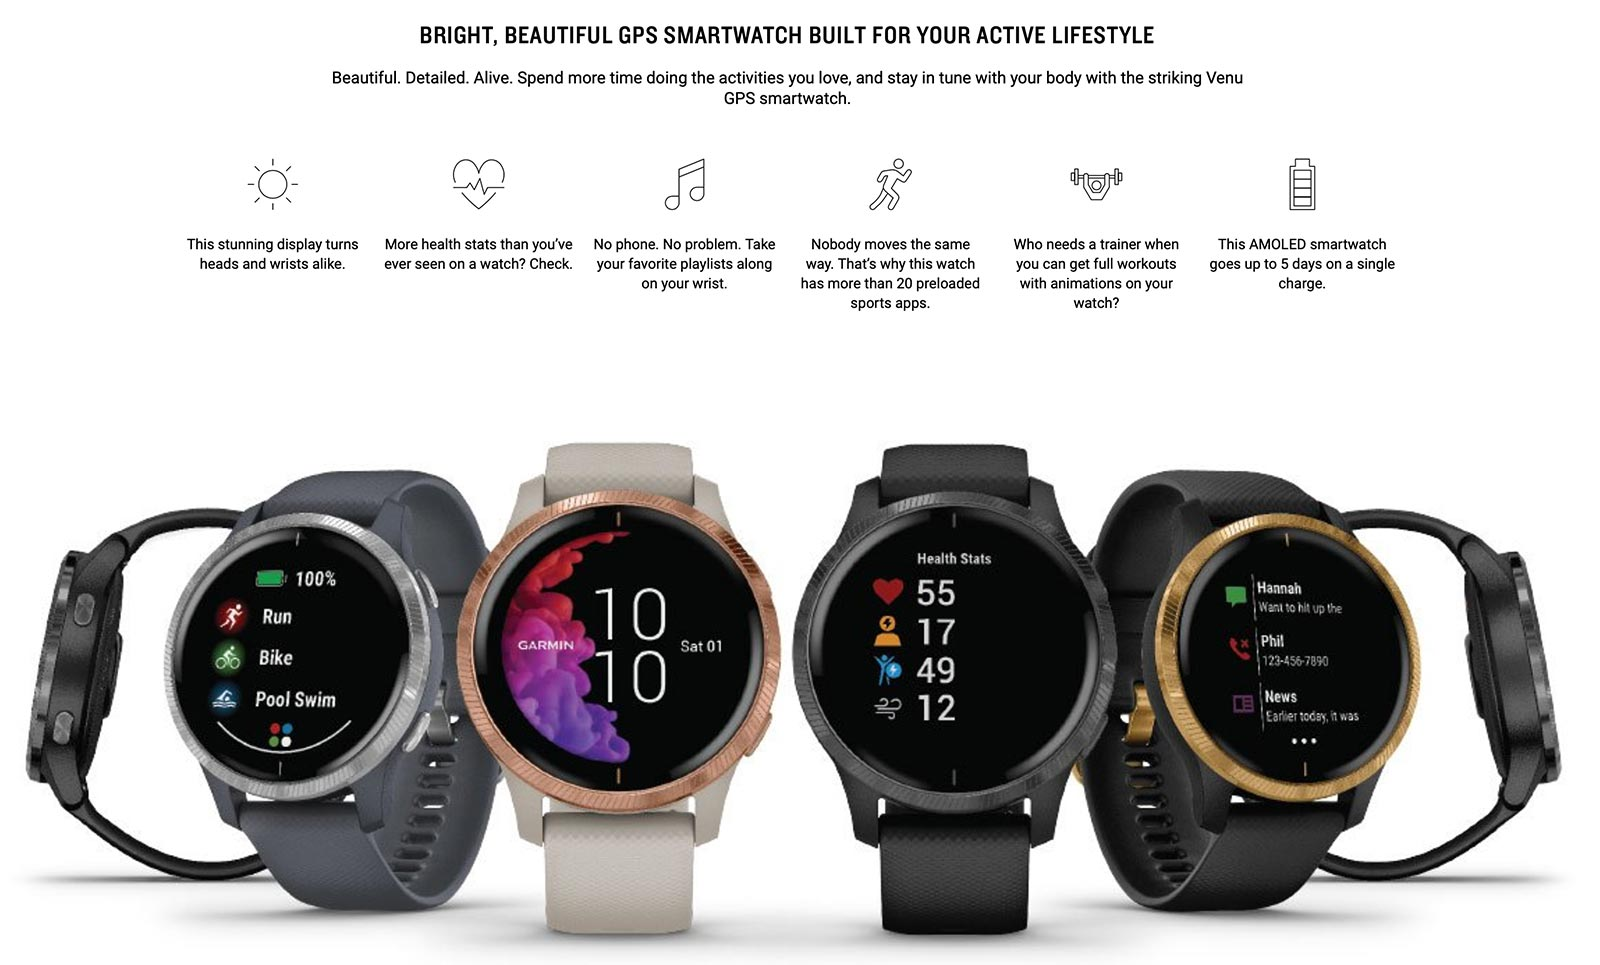 Garmin's basic page featuring the Venu watch